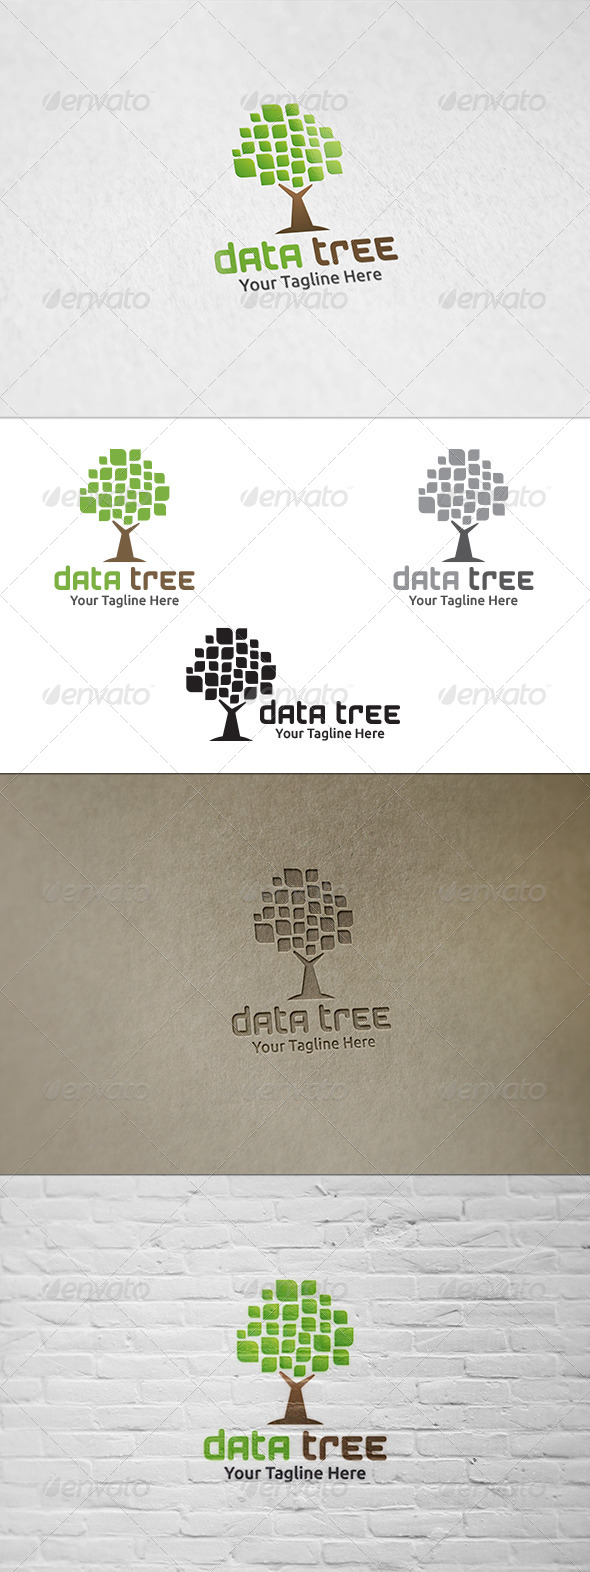 GraphicRiver Data Tree Logo Template 8735280